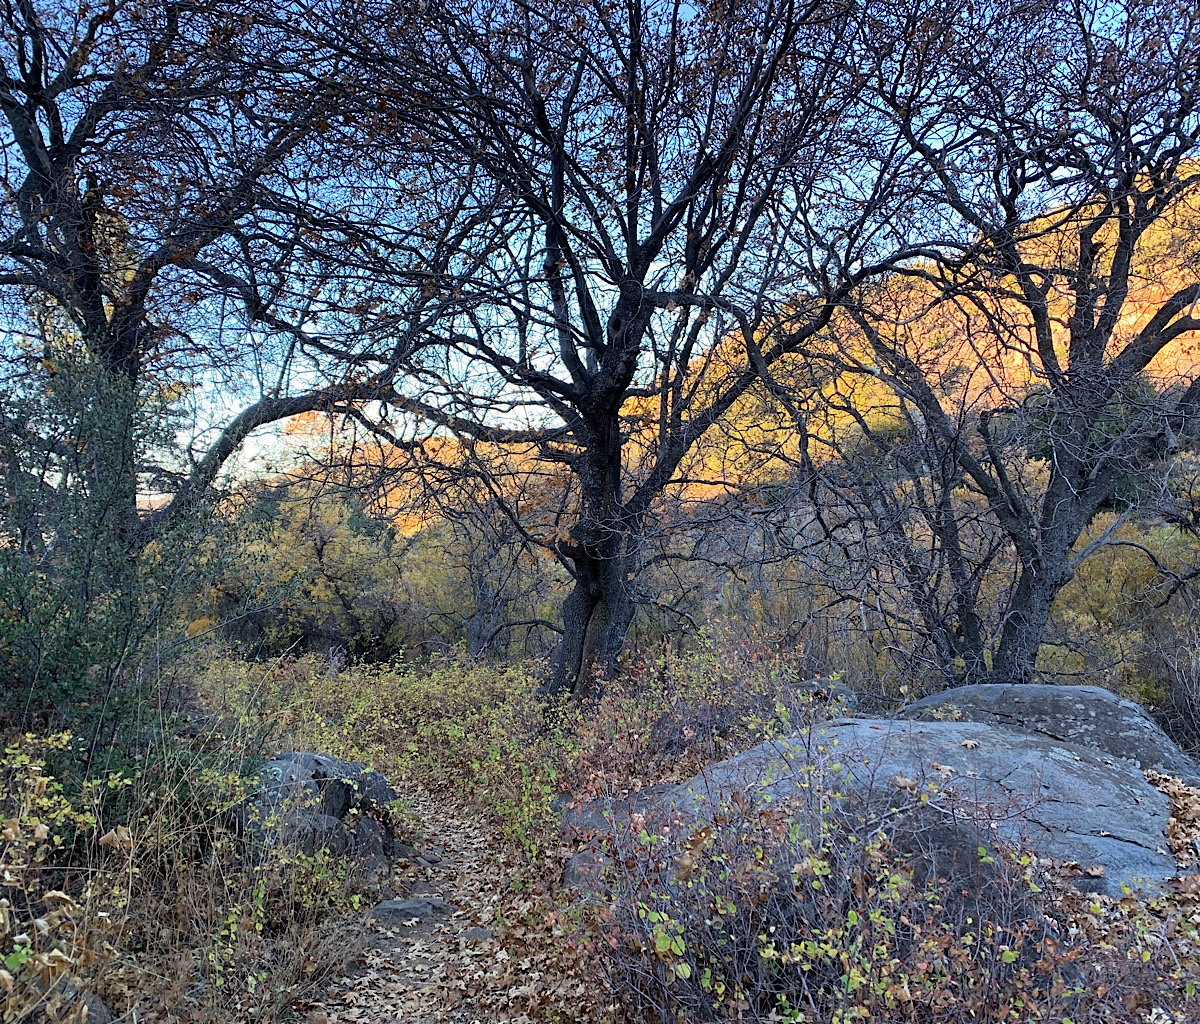 The PCT walks through an oasis by a stream where oak trees take advantage of the cool, moistness.